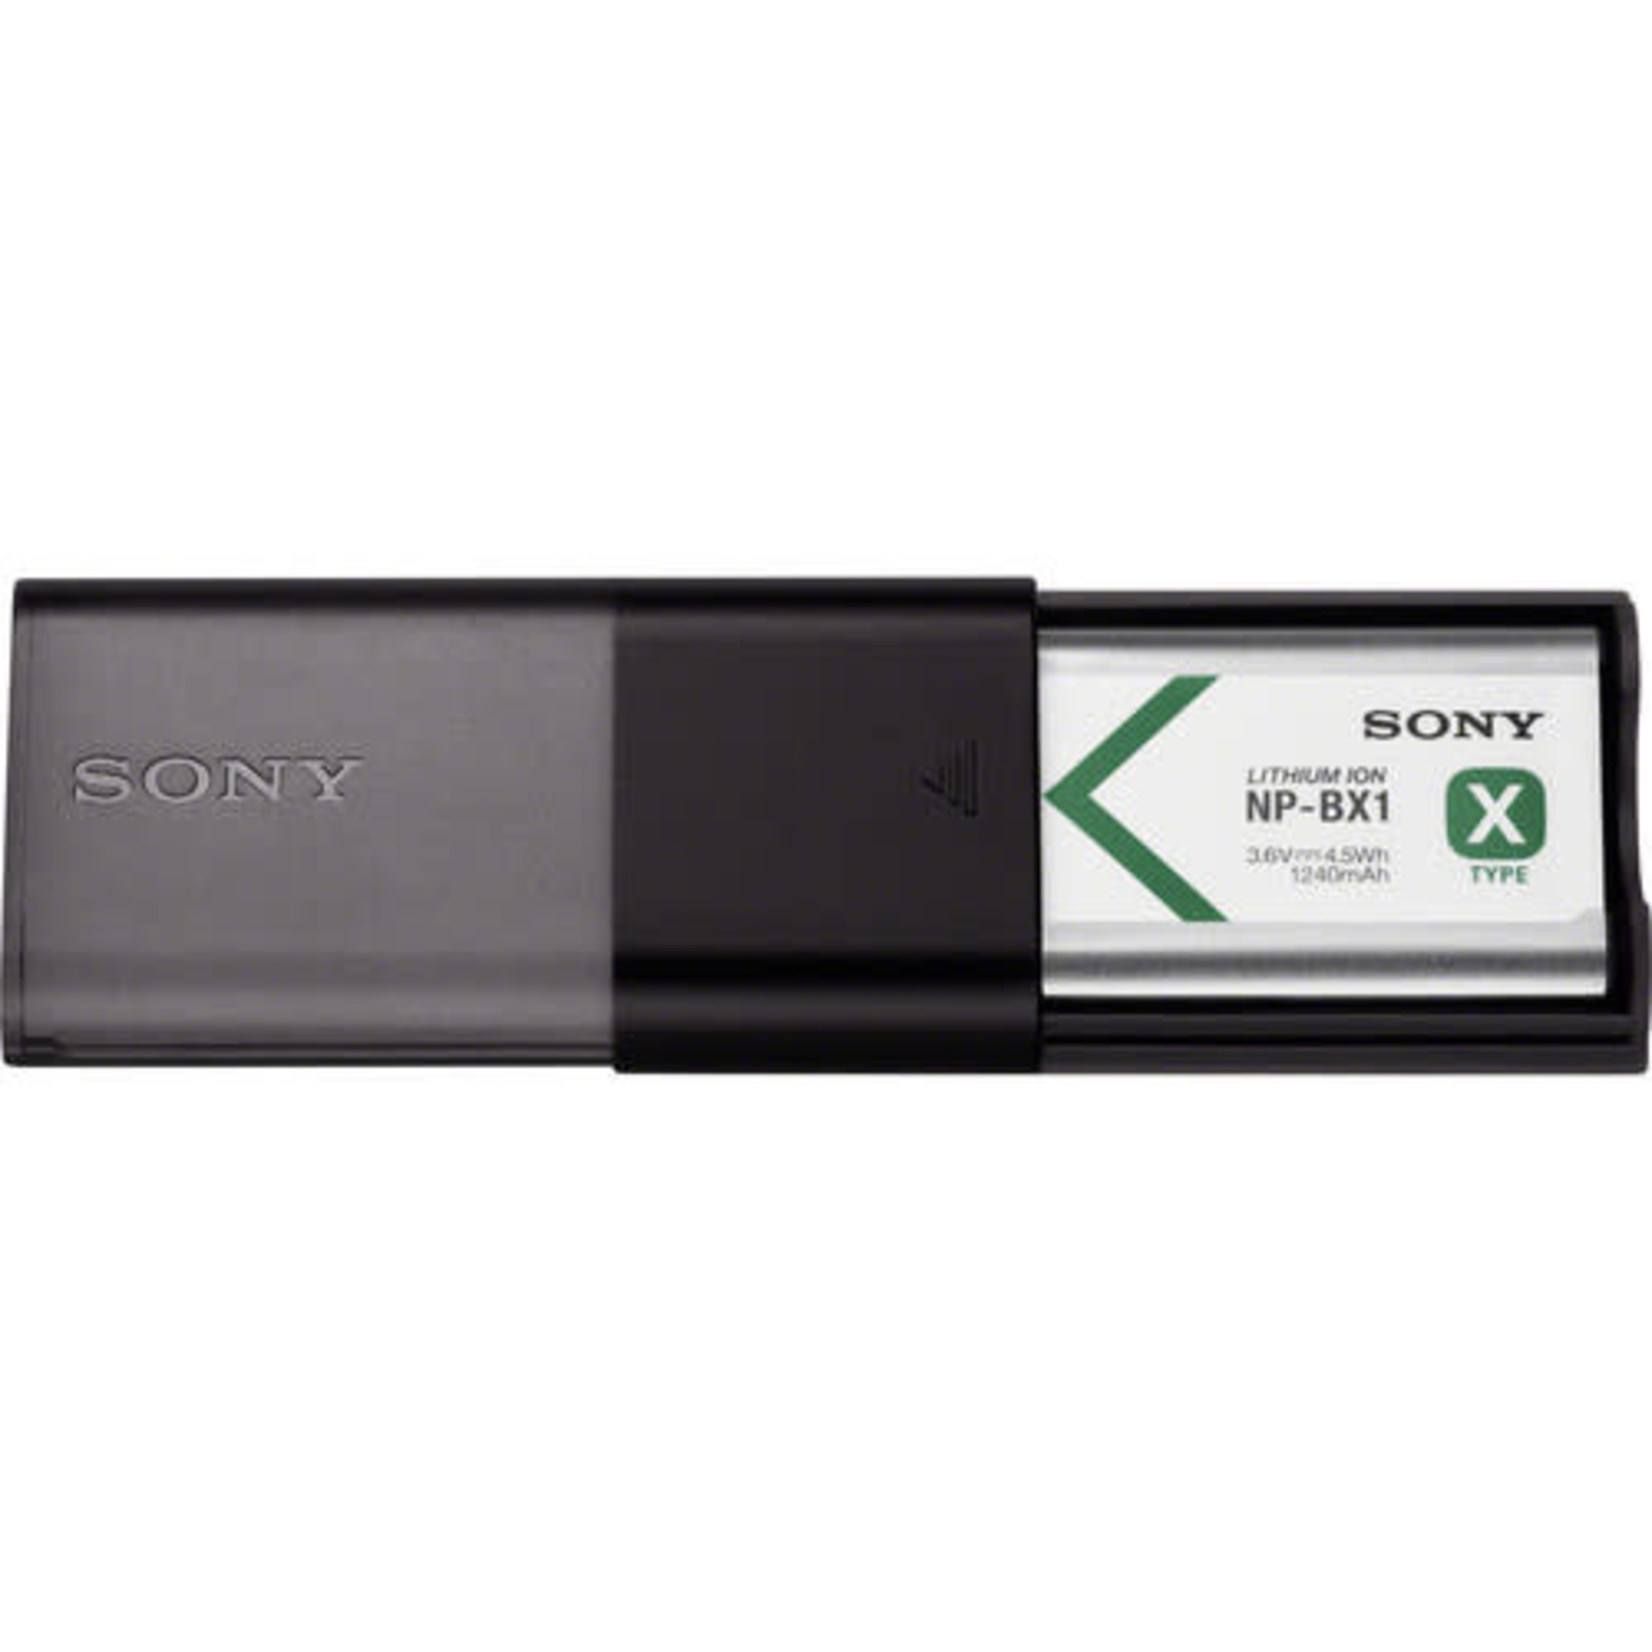 Sony Sony Battery and Travel DC Charger Kit with NP-BX1 Battery